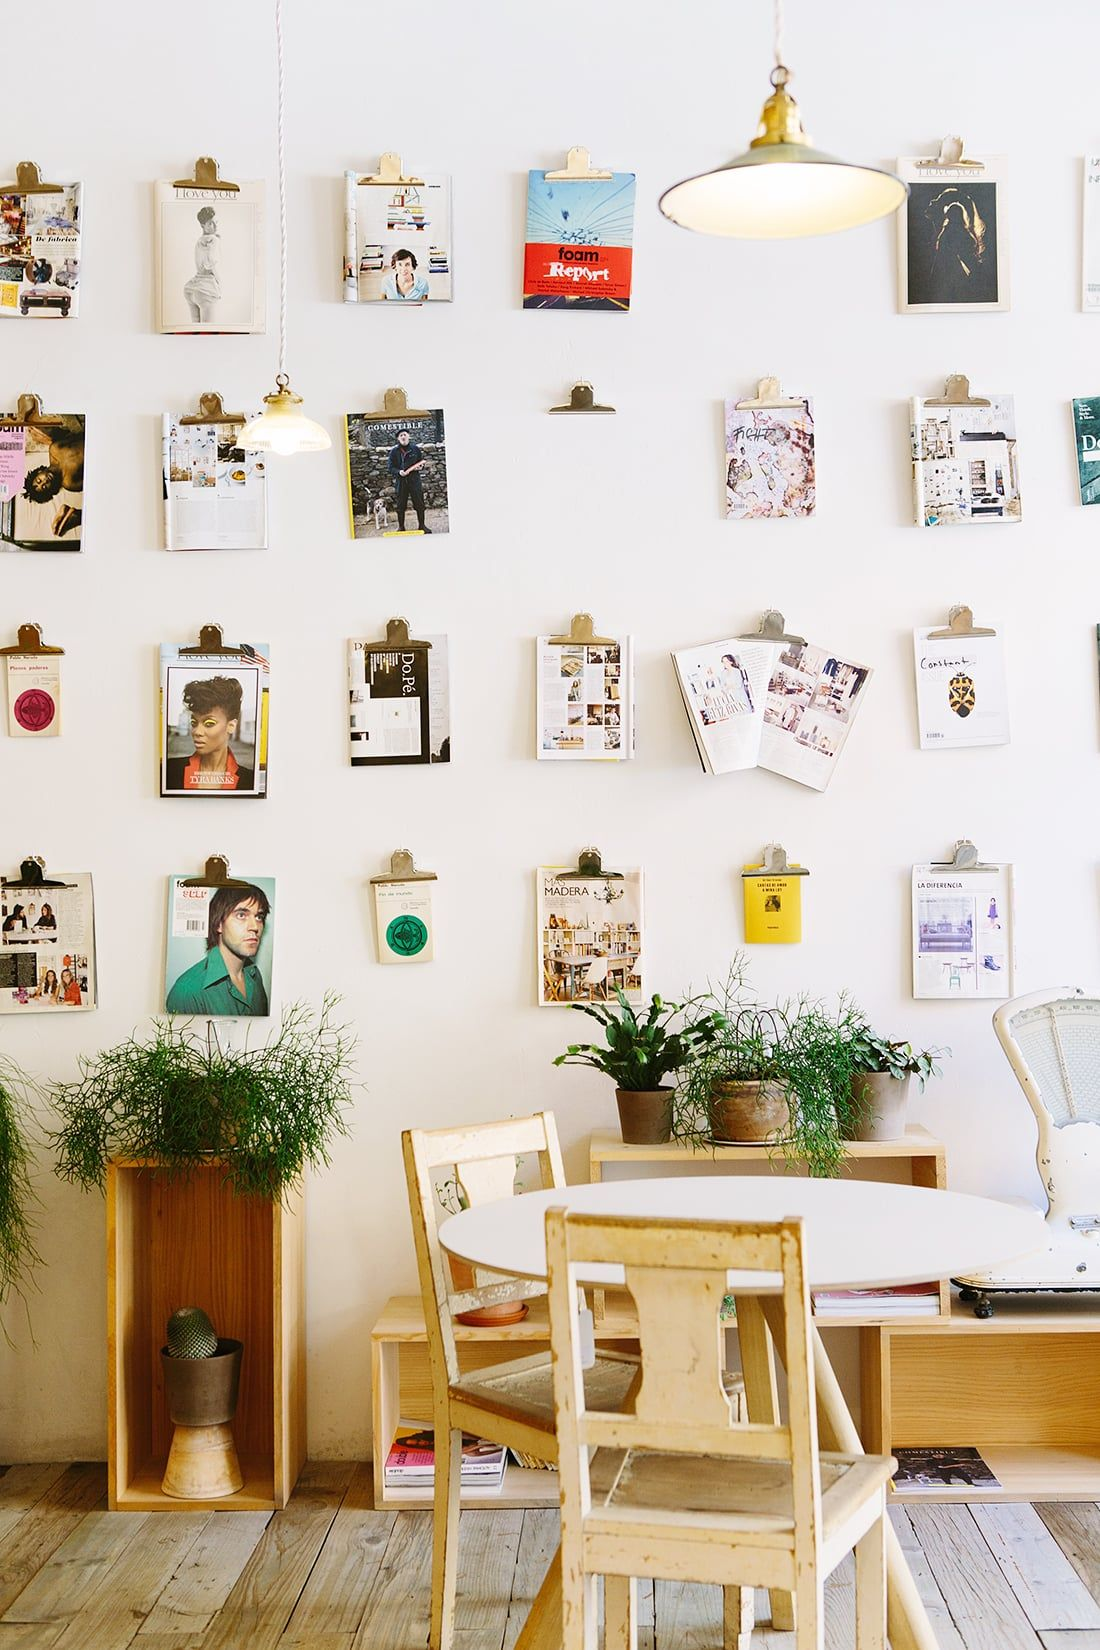 How To Hang Pictures Without Destroying